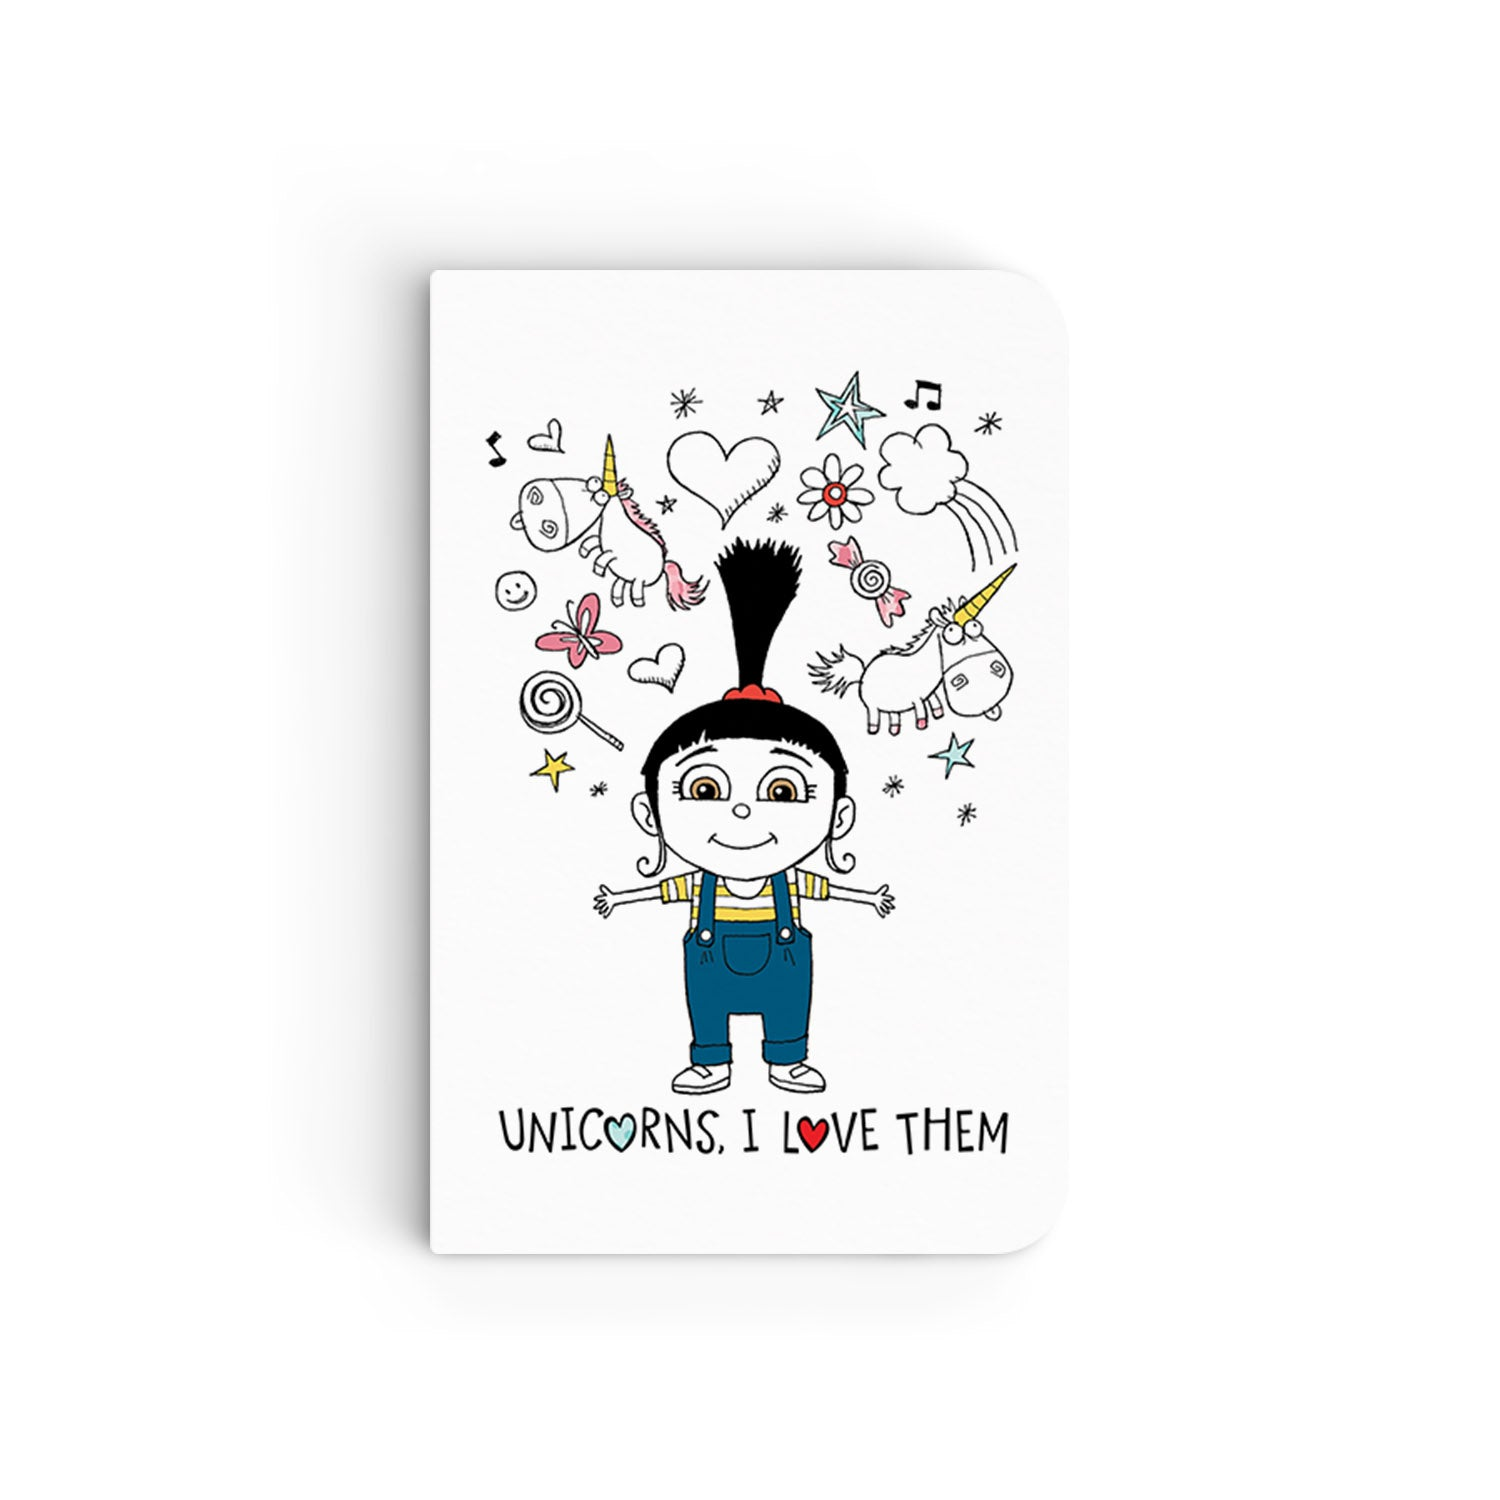 Flapbook Mini - Unicorns, I Love Them - Despicable Me/Minions